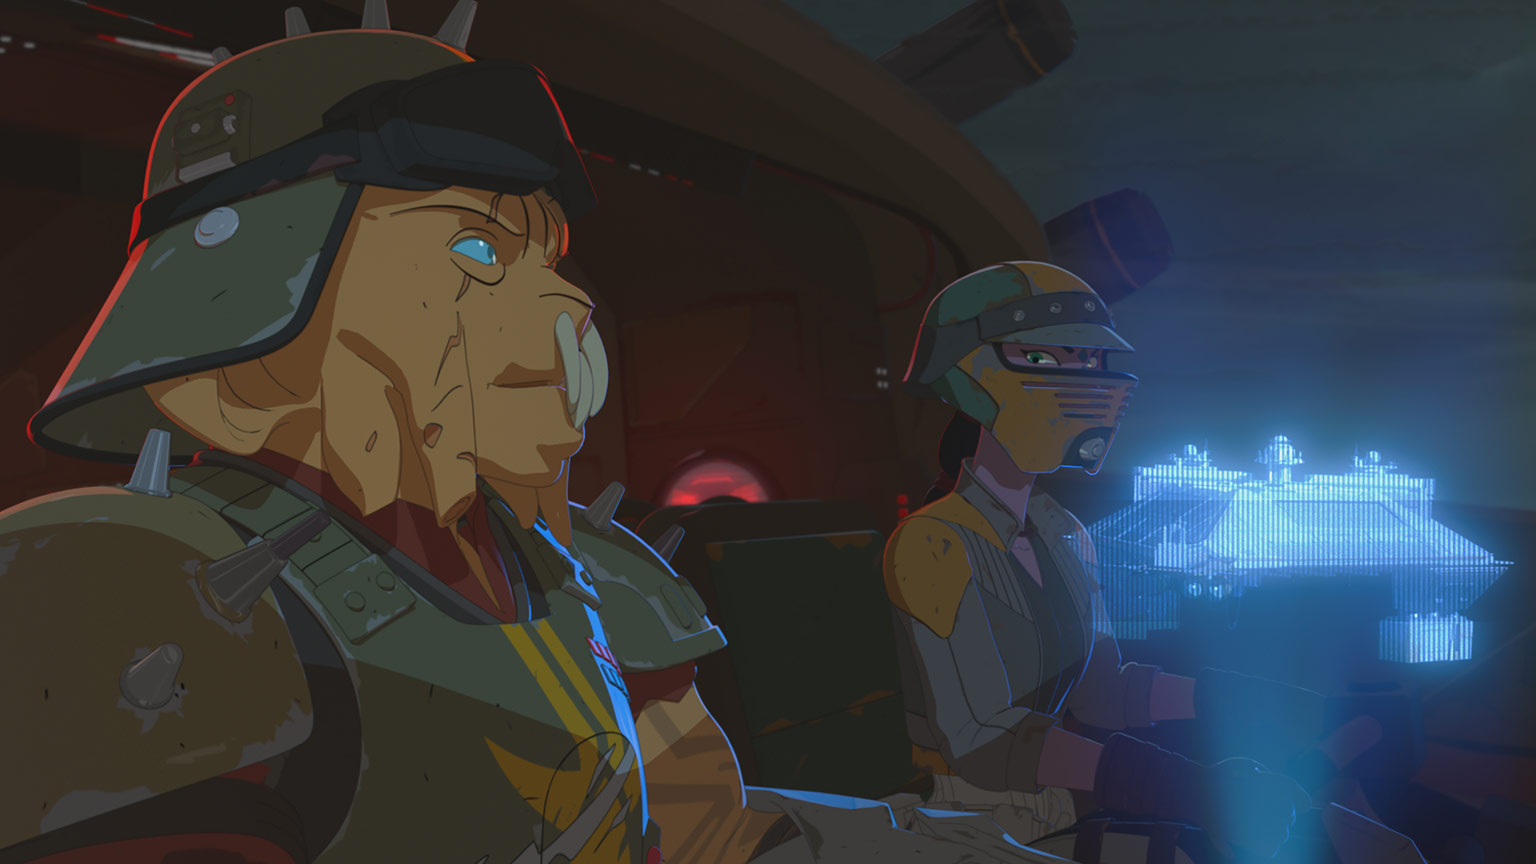 Kragan Gorr readies an attack in Star Wars Resistance.